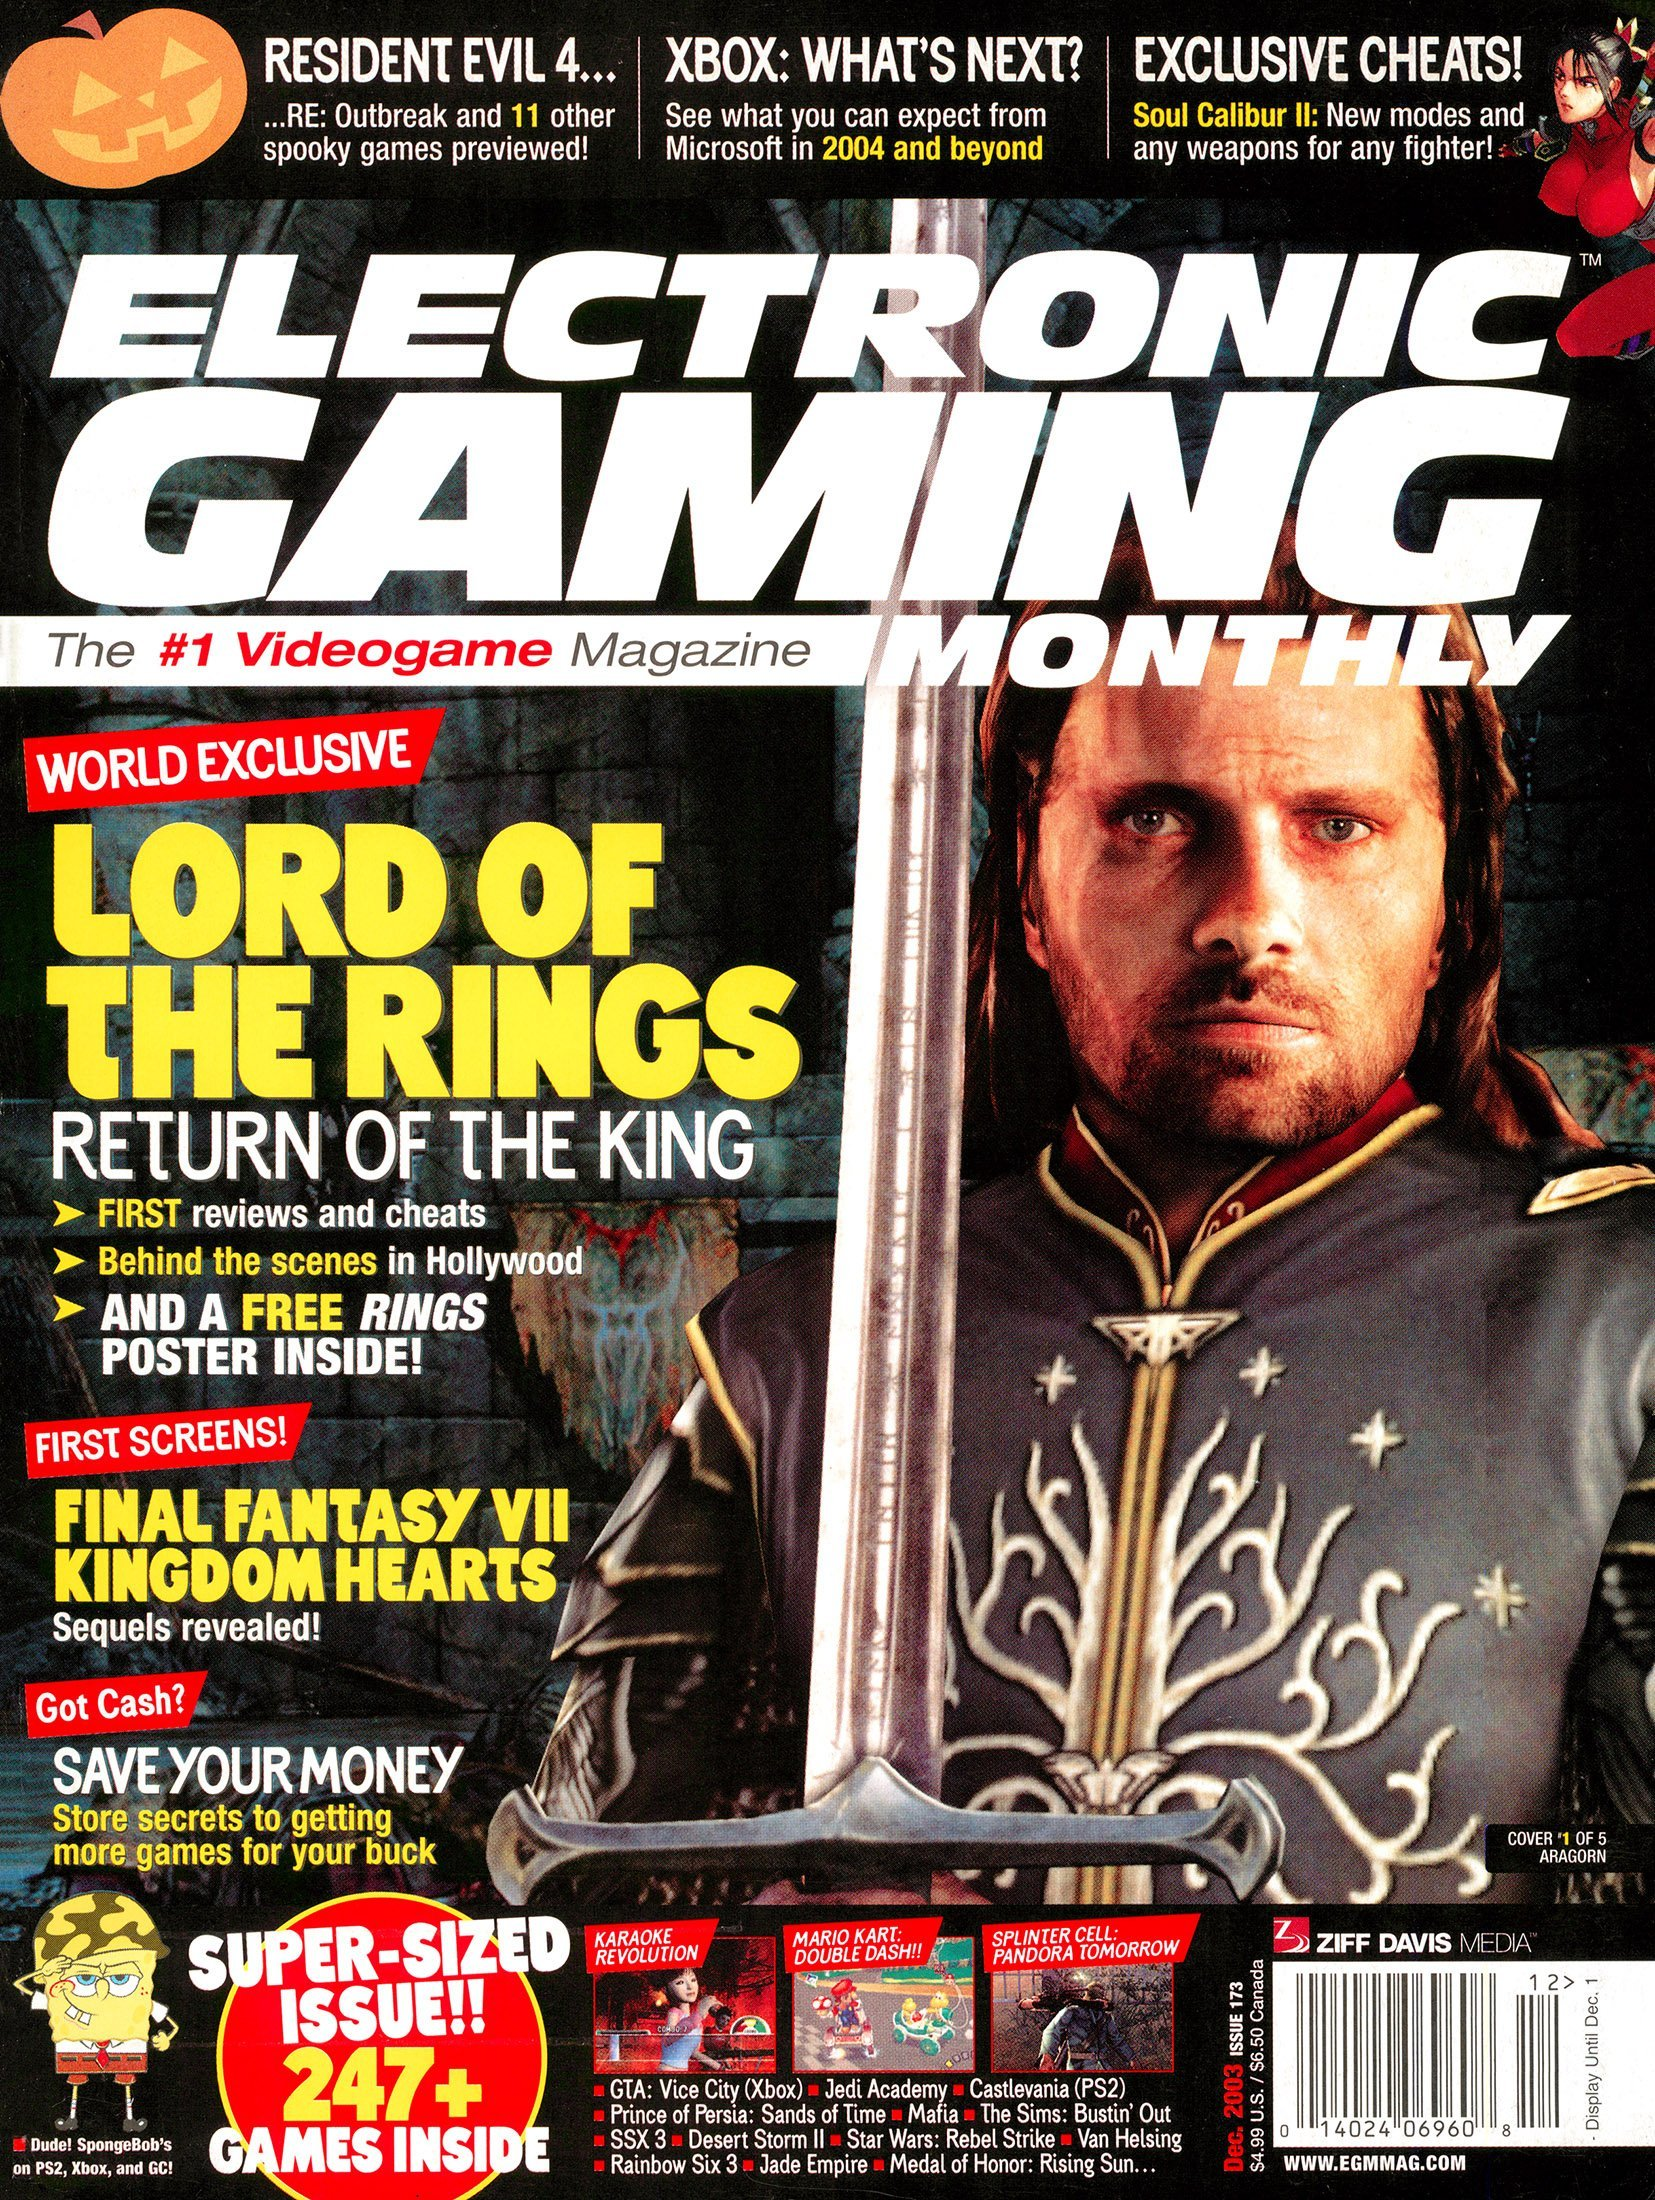 Electronic Gaming Monthly Issue 173 (December 2003) cover 1